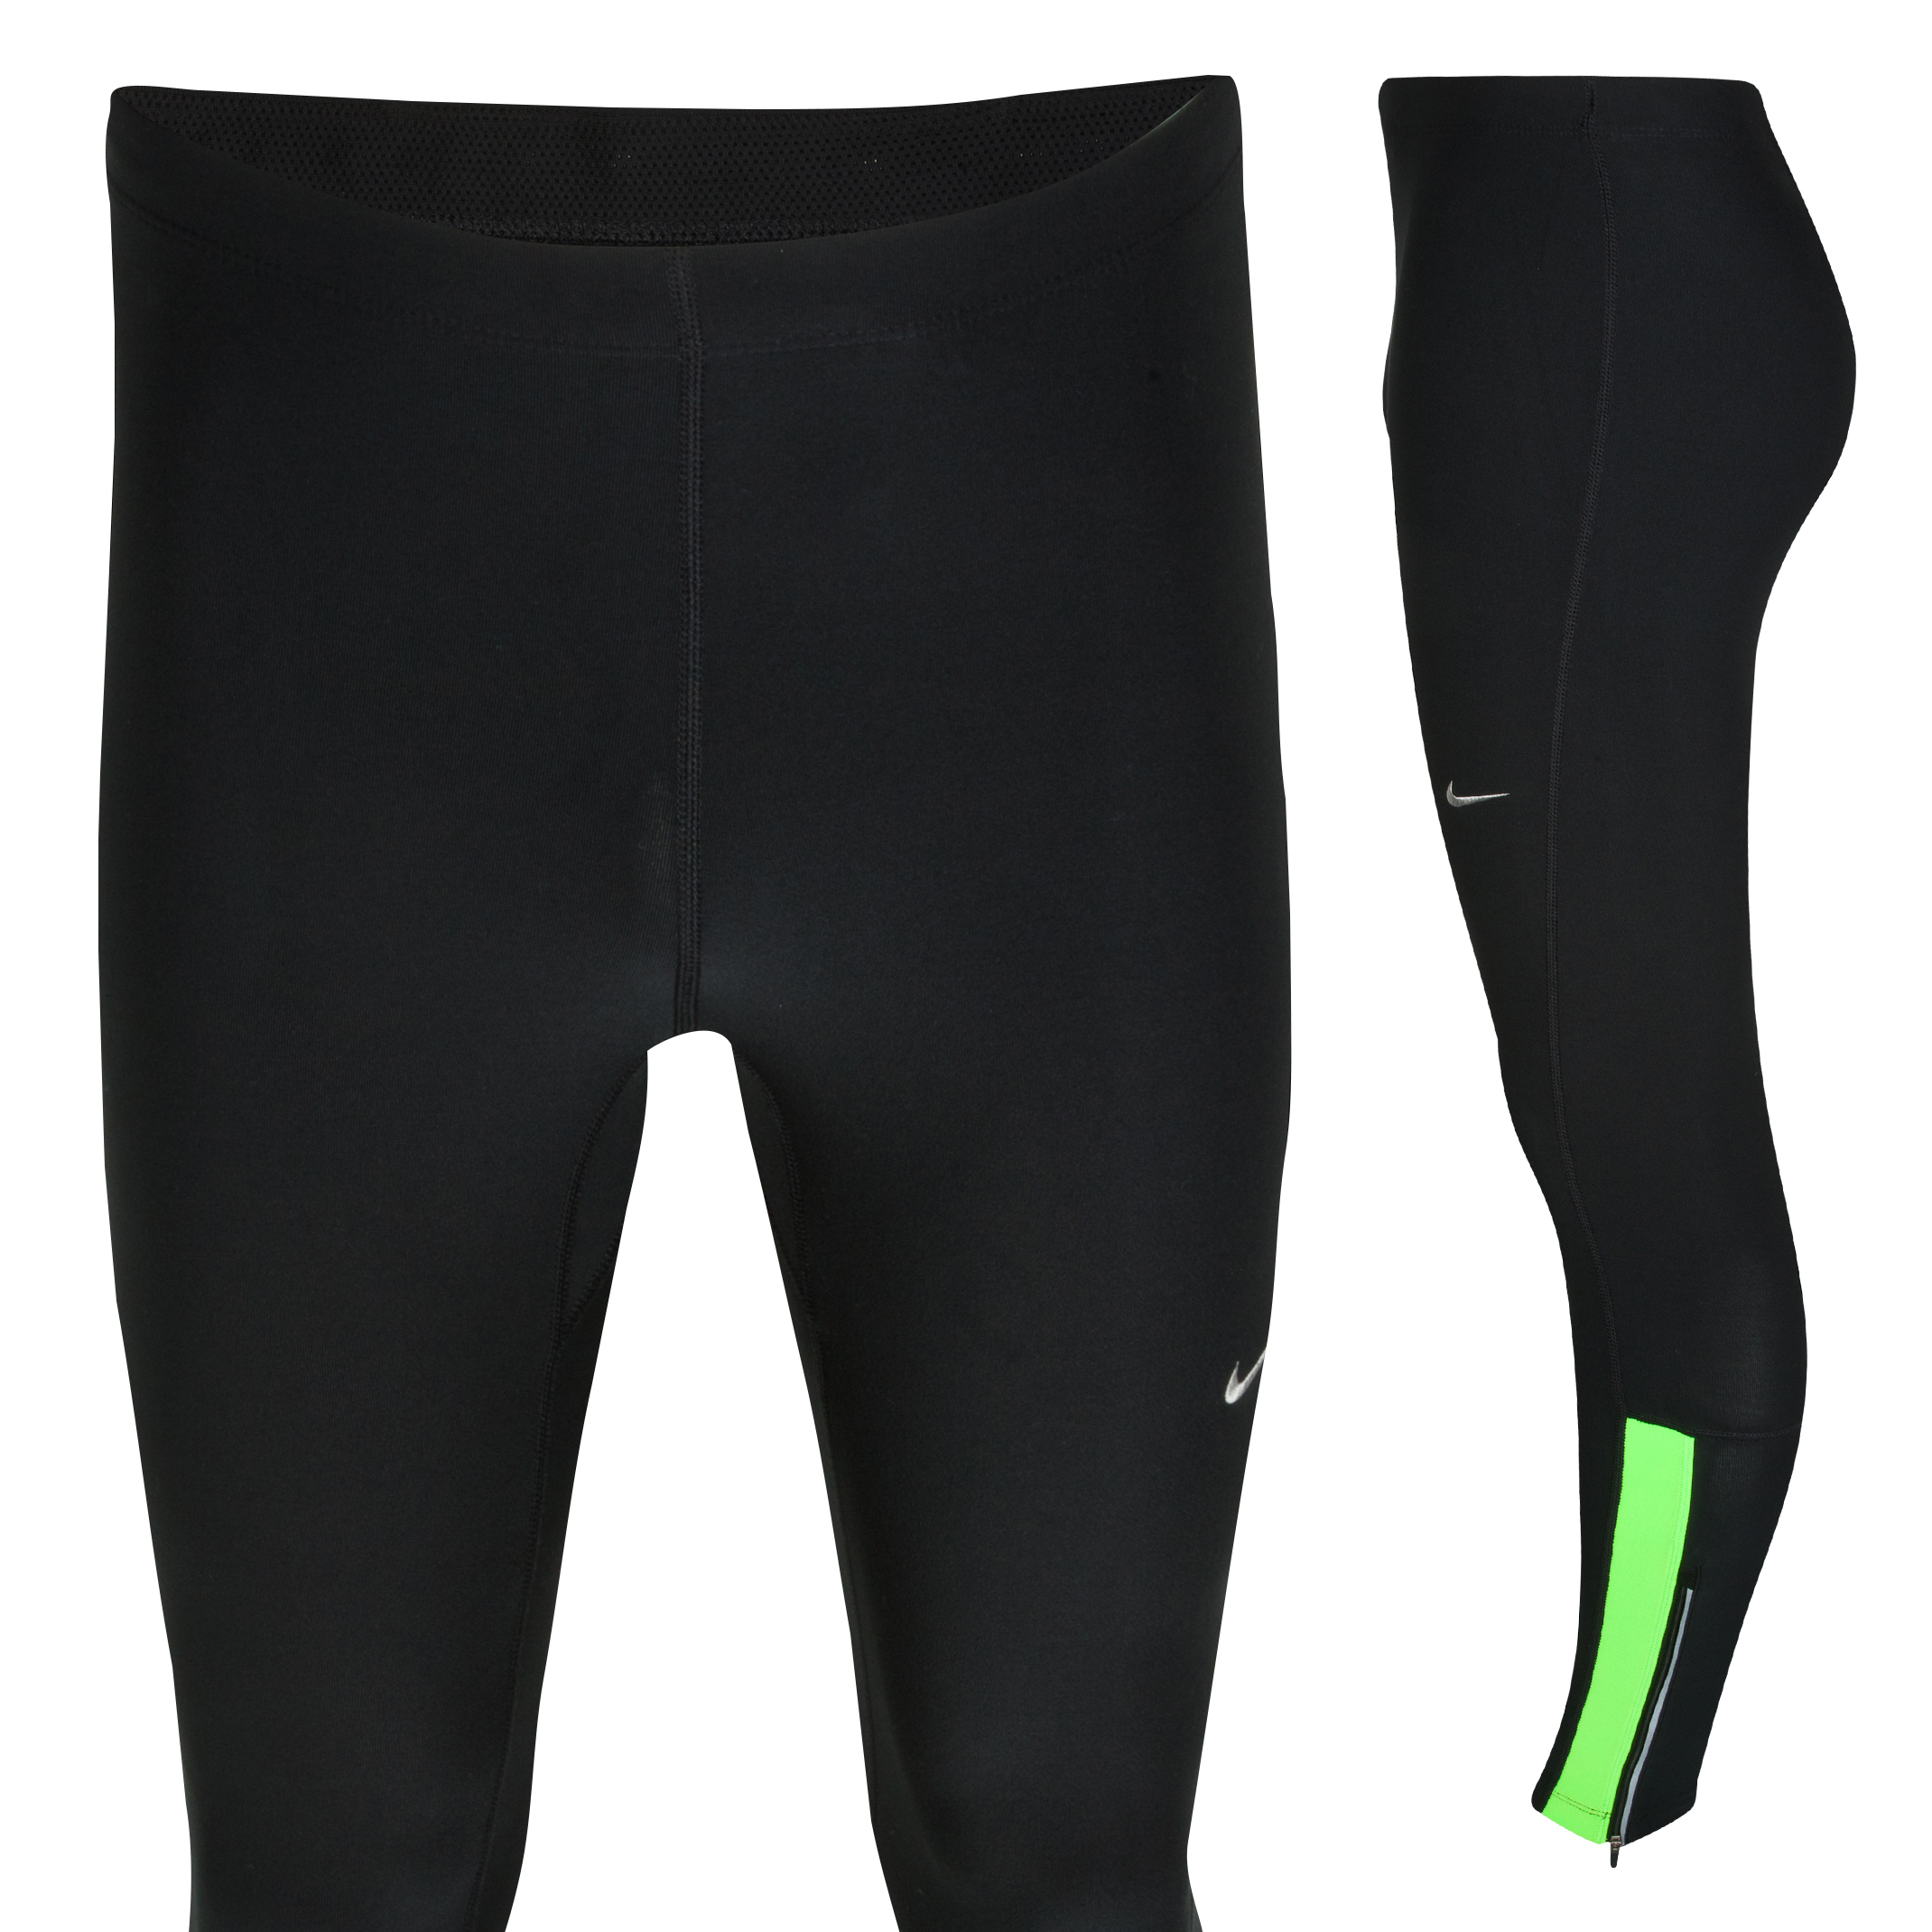 Nike Filament Tights - Black/Electric Green/Matte Silver